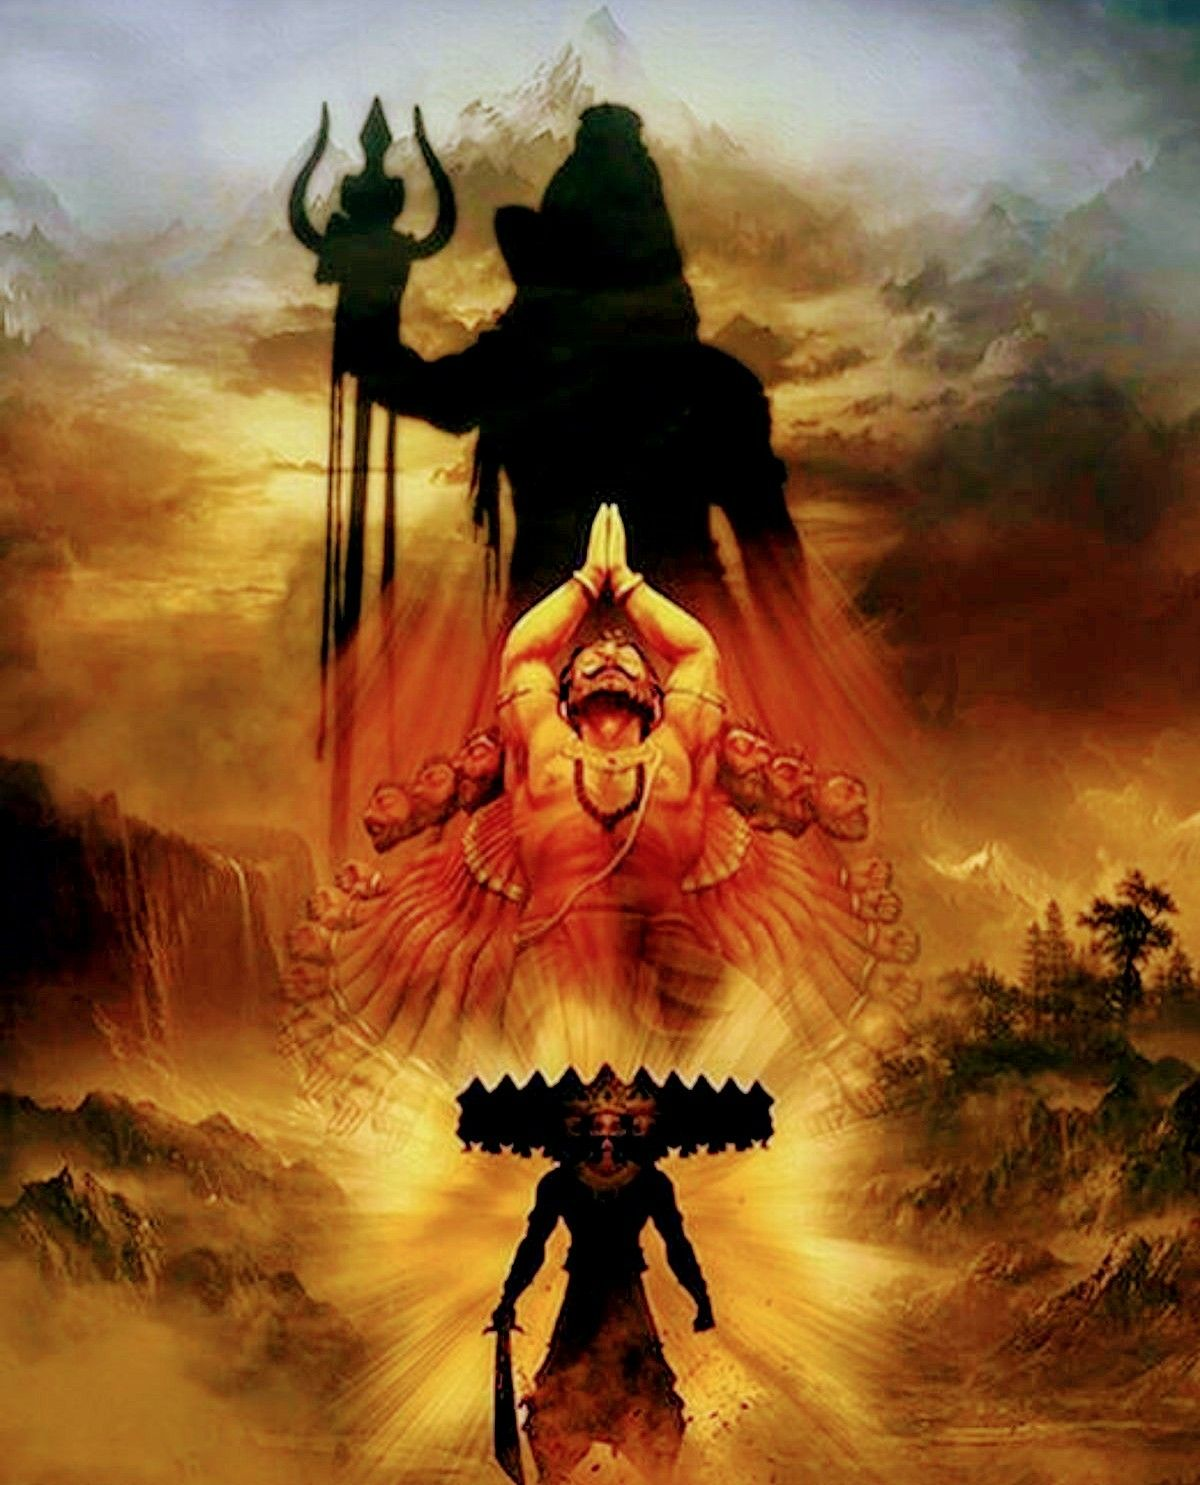 mahadev iphone wallpapers posted by zoey sellers mahadev iphone wallpapers posted by